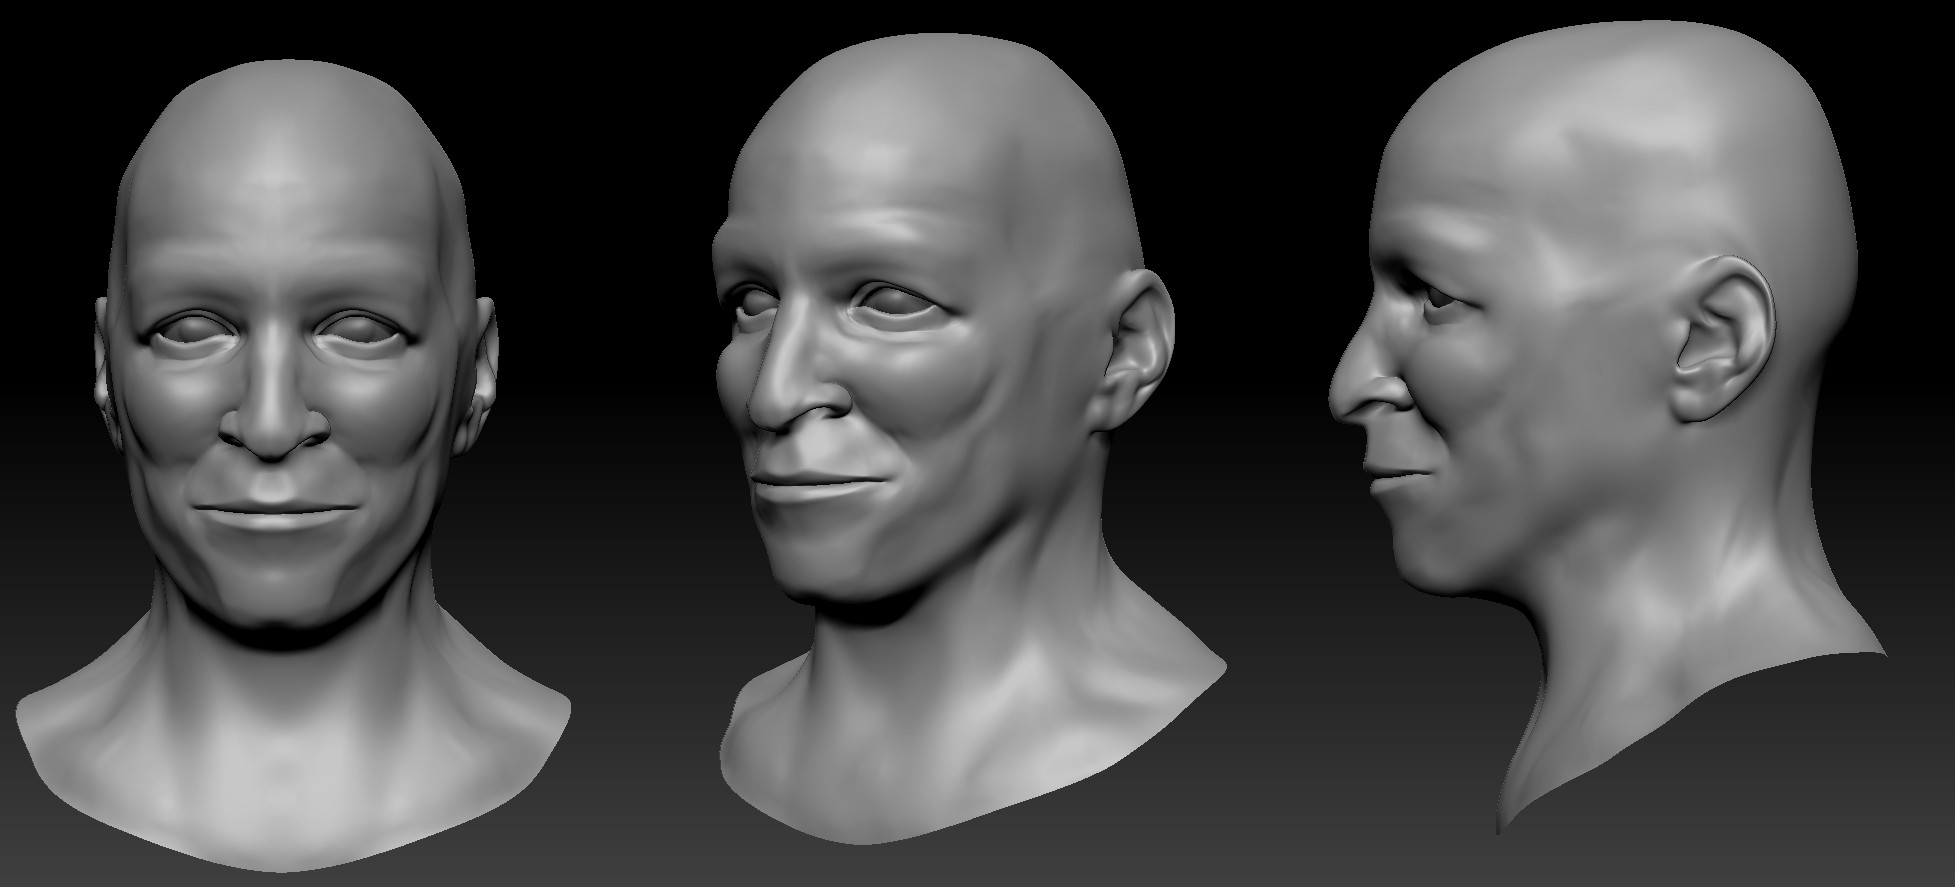 Game Character 01 - Head Sculpt